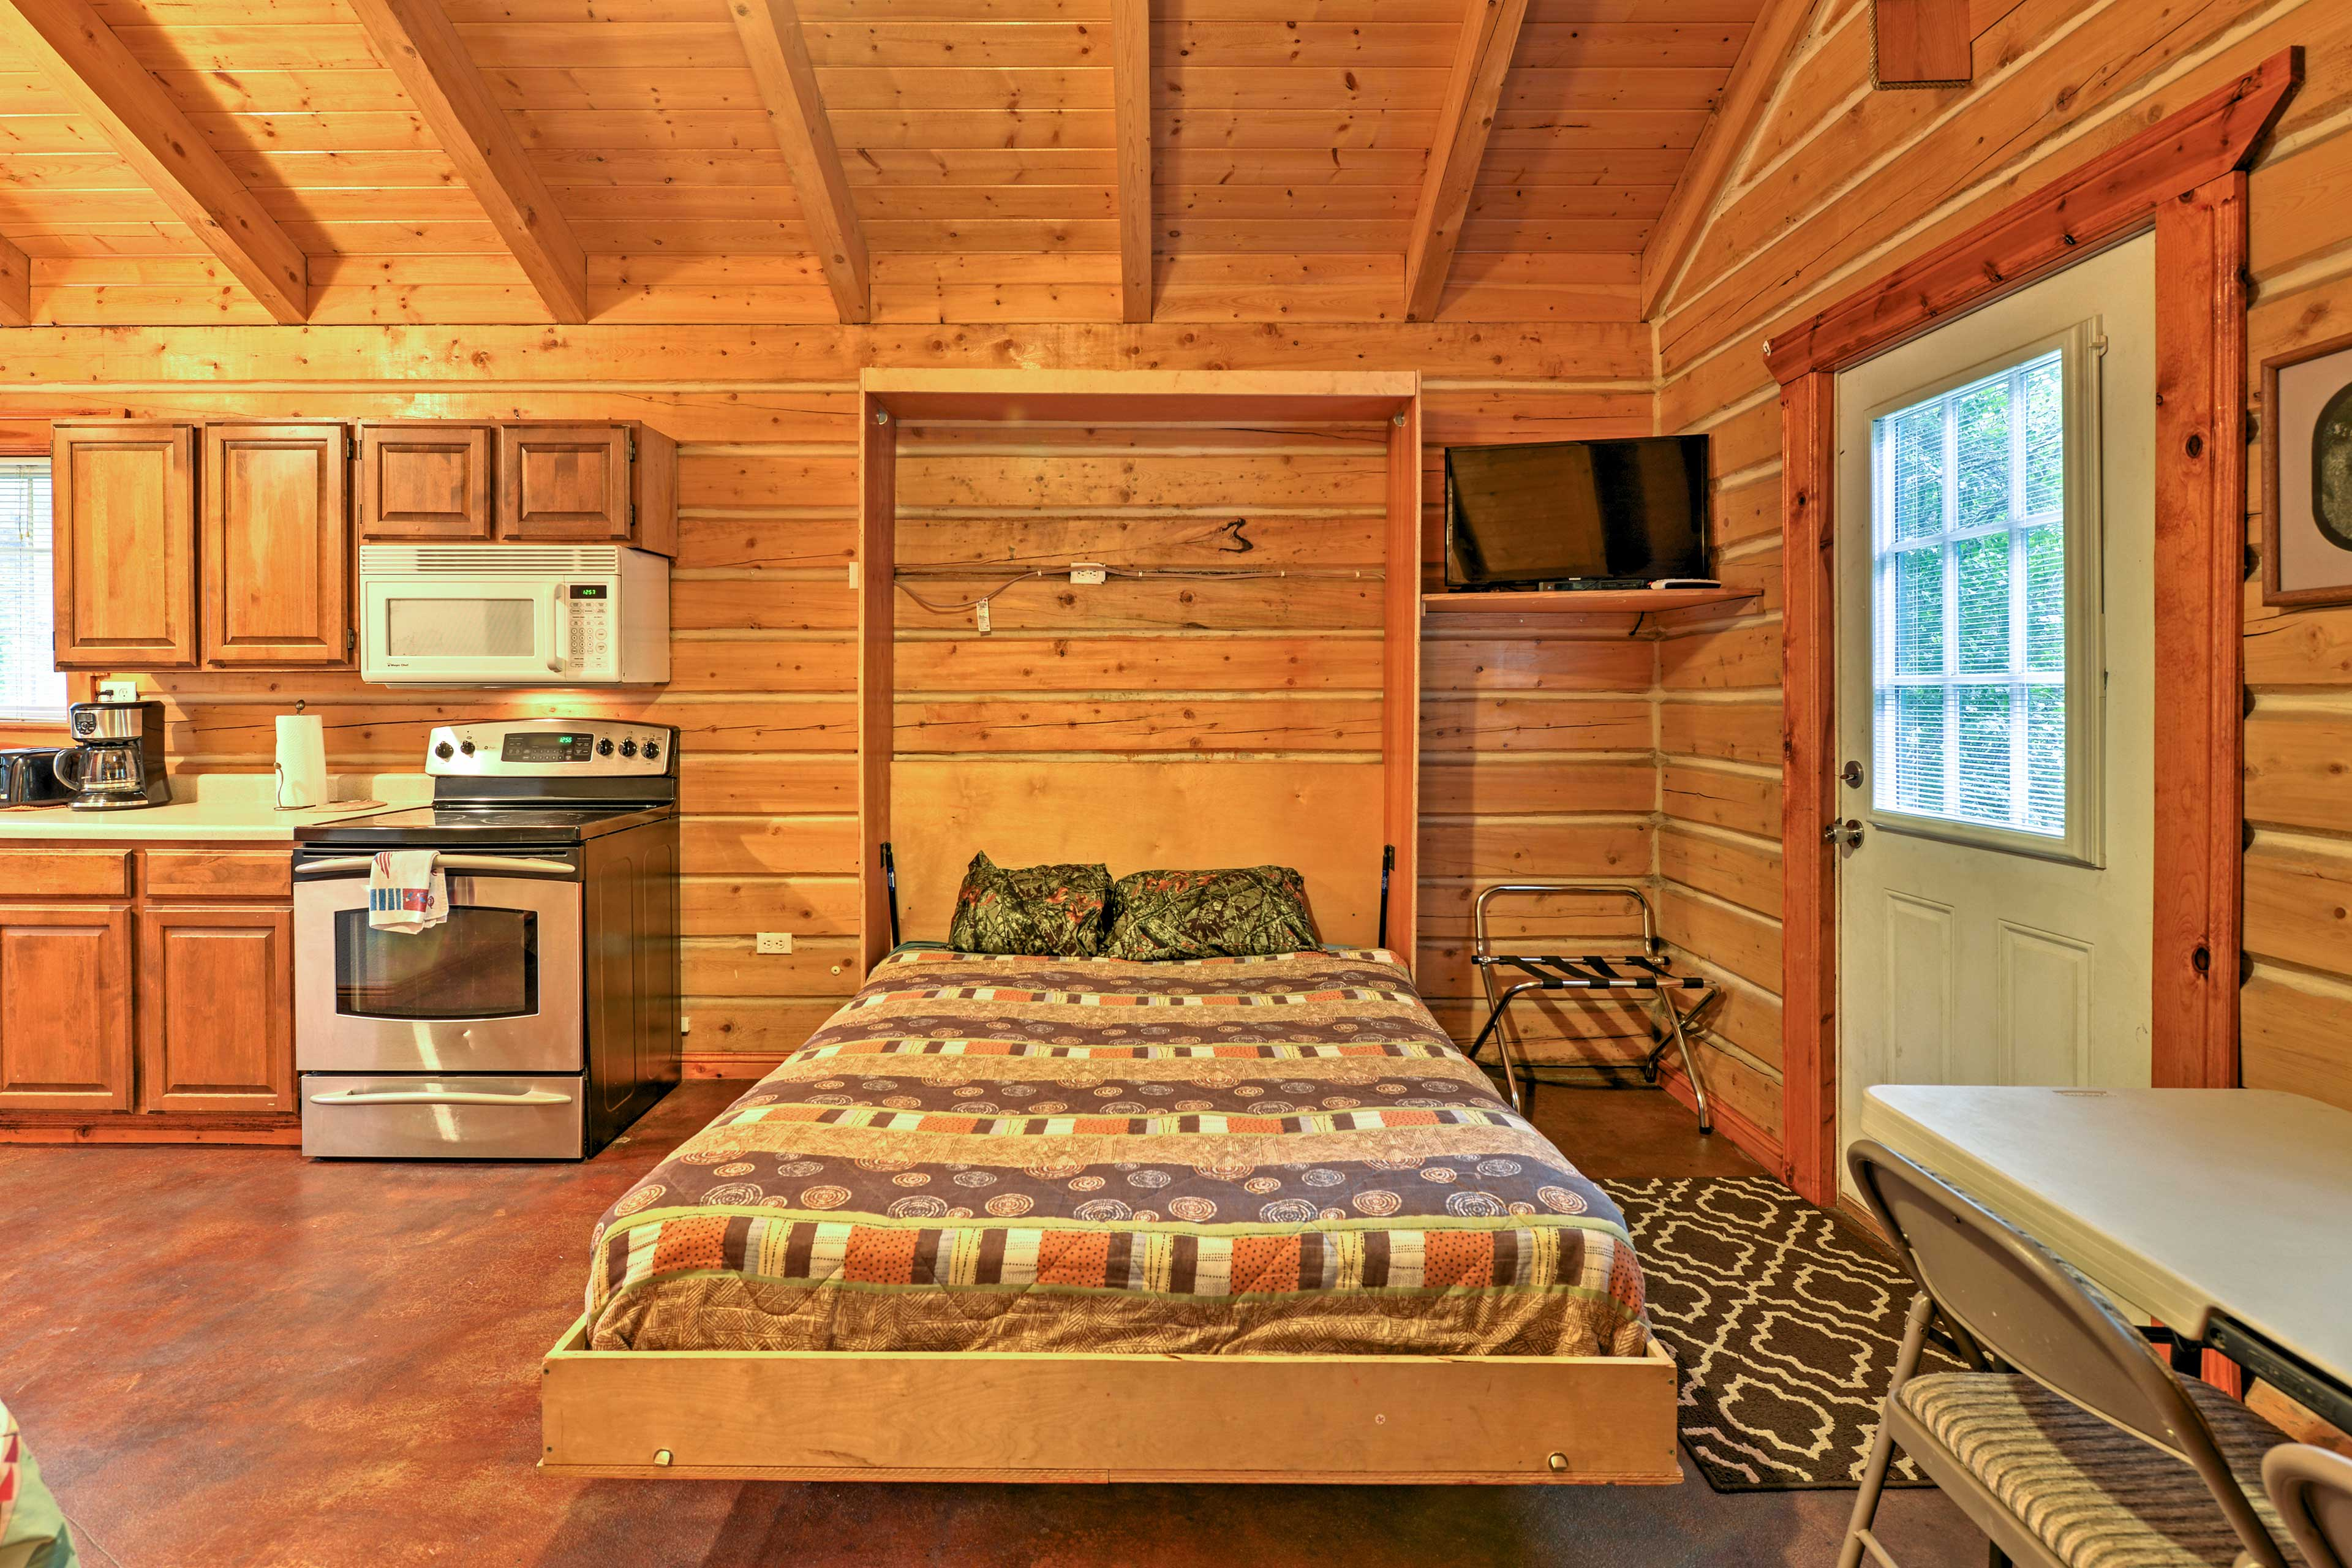 Pull down the Murphy bed for an additional queen bed to lie back on.